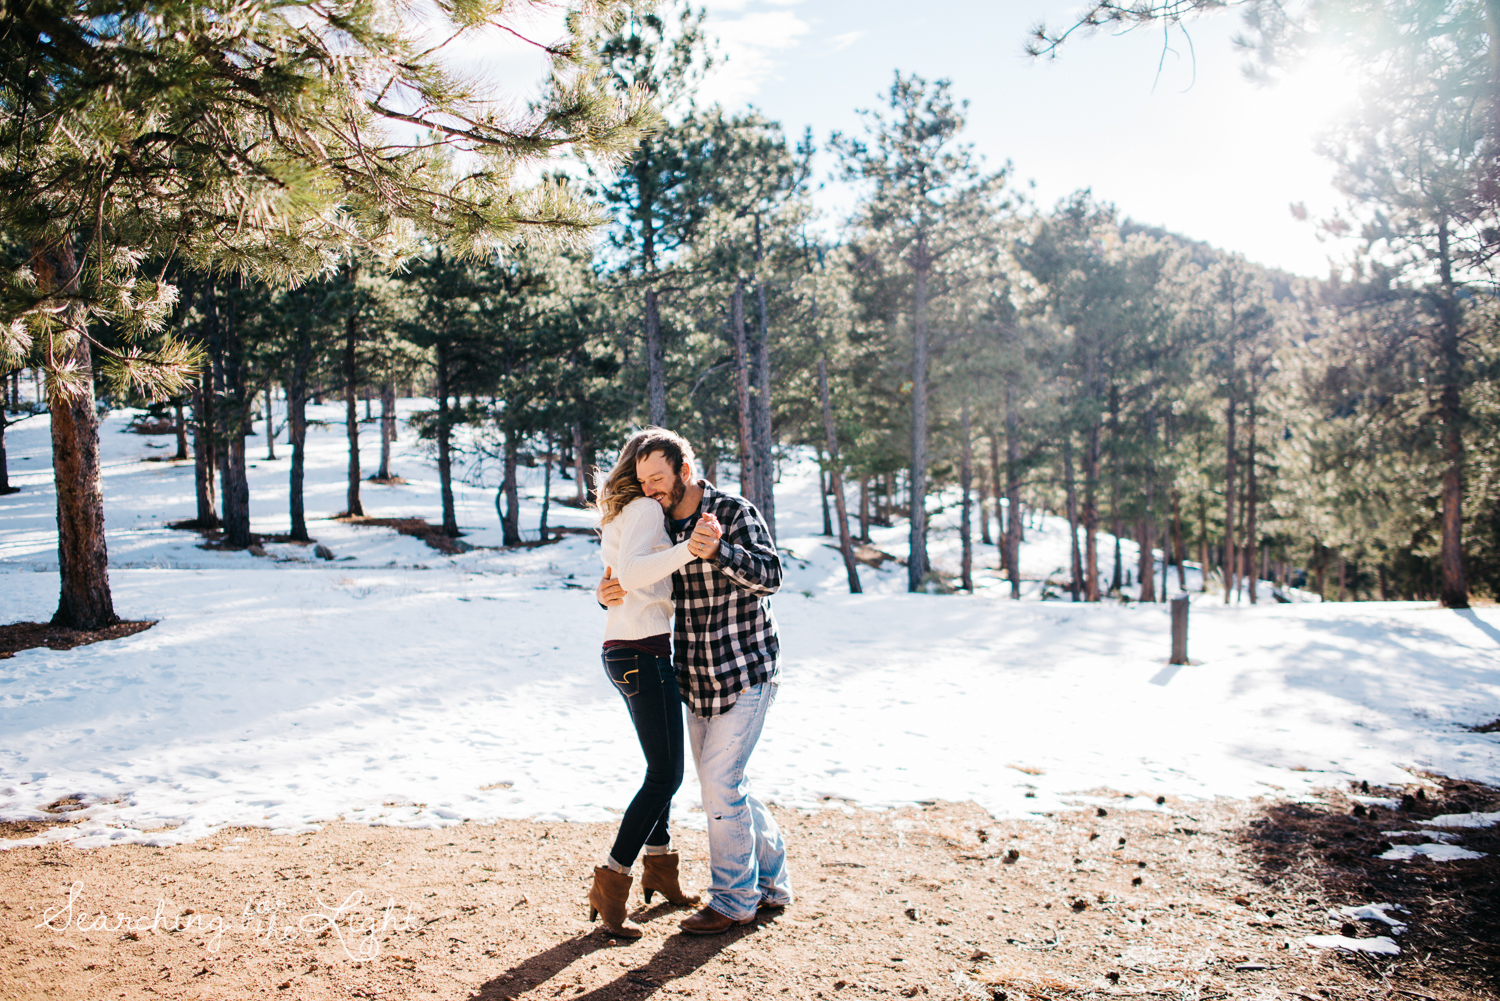 21-mountain_wedding_photographer_anniversary_photos_ jenni&kipp_184.jpg